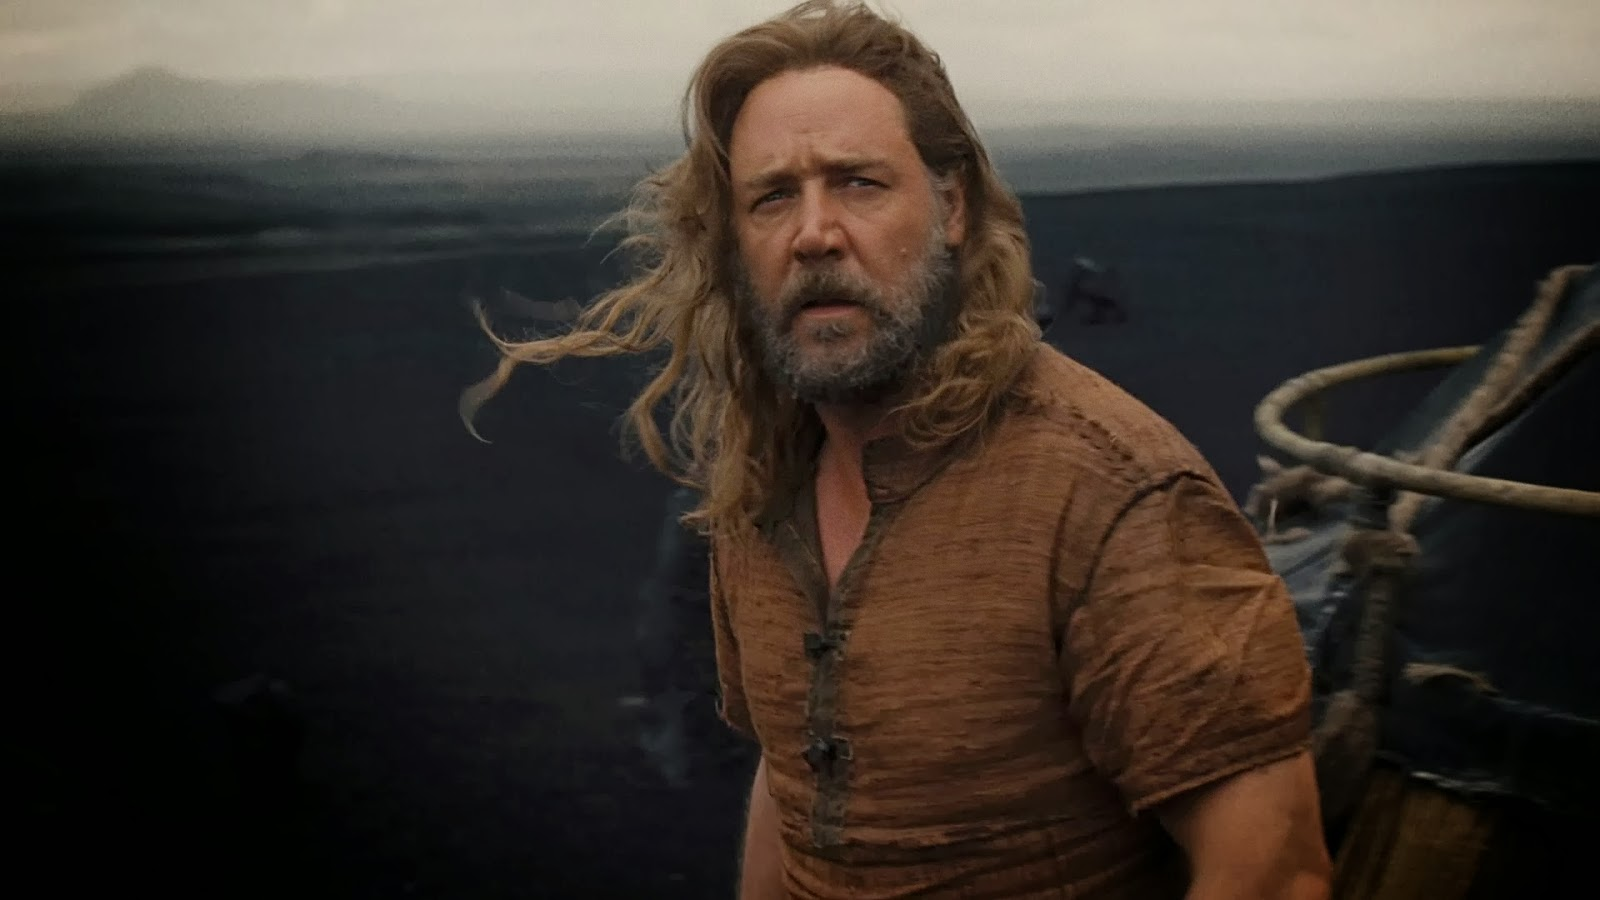 Russell-Crowe-Noah-2014-Wallpaper.jpg